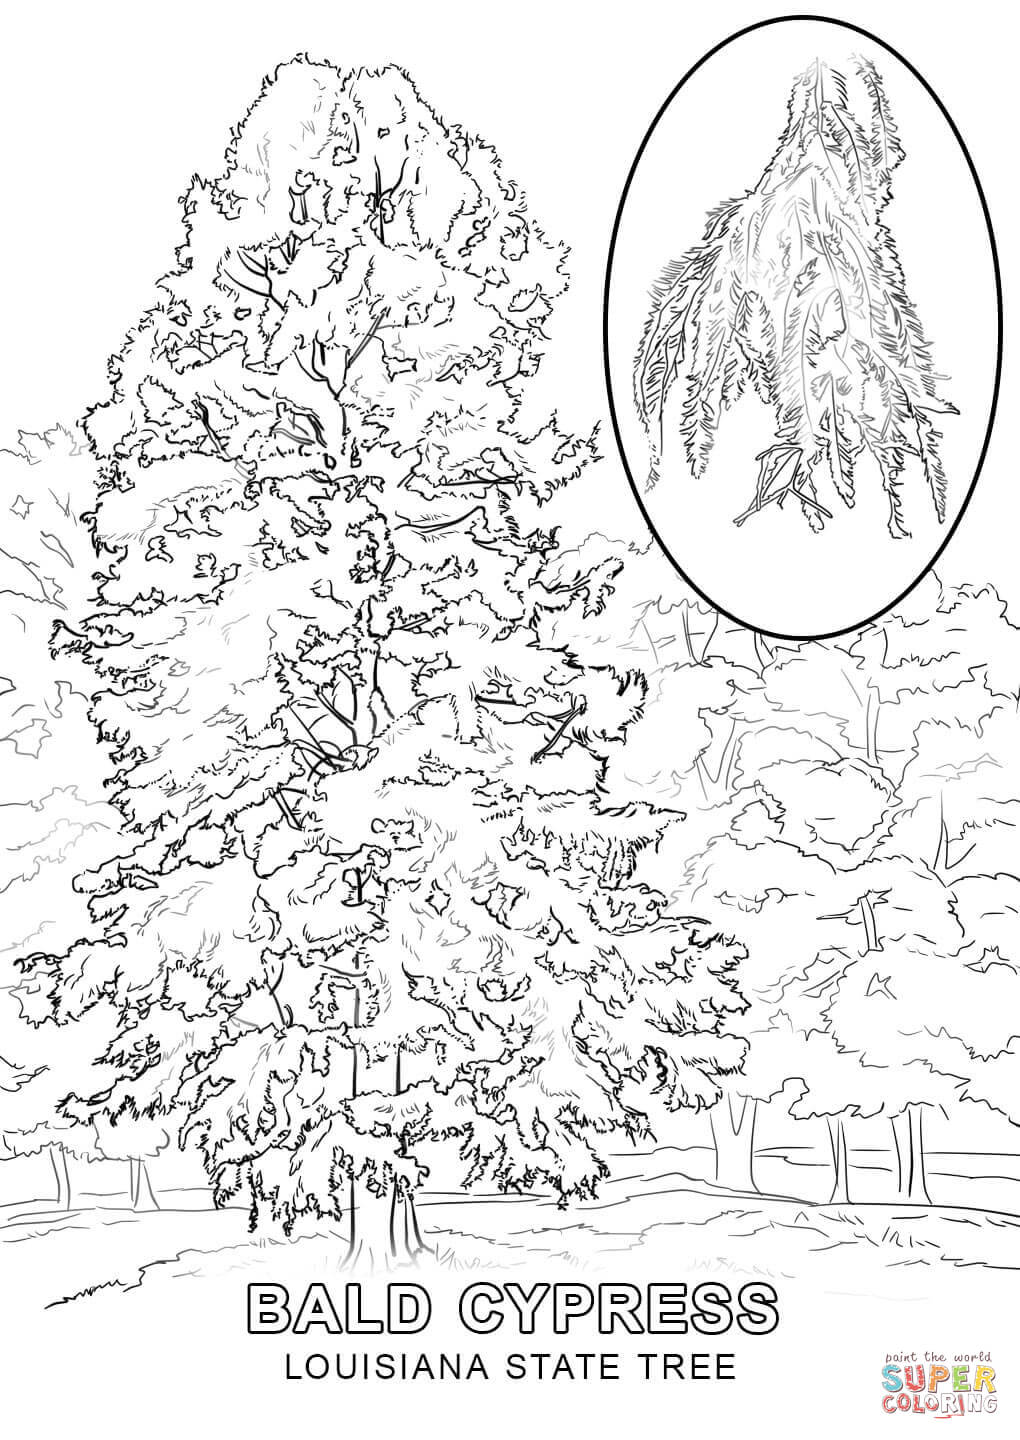 louisiana state symbols coloring pages louisiana state tree coloring page free printable symbols coloring pages louisiana state